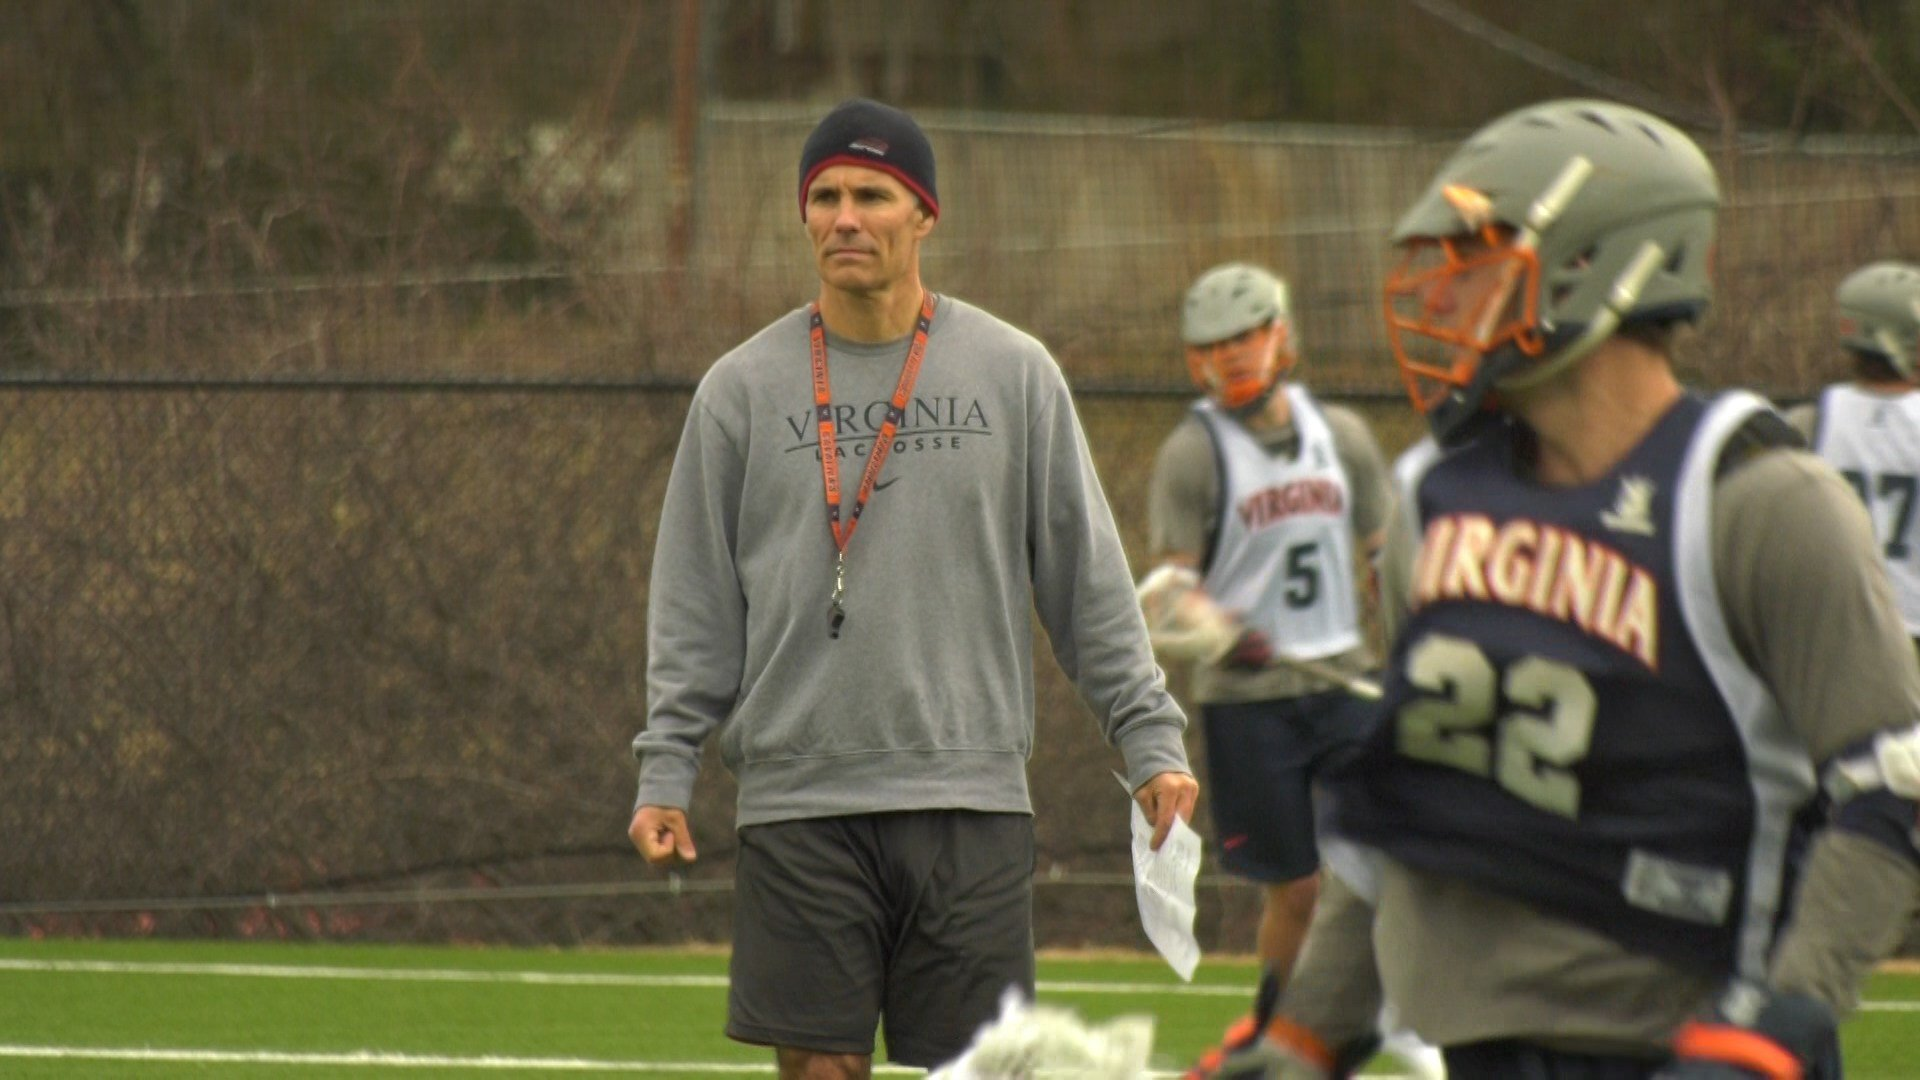 UVa head lacrosse coach Lars Tiffany